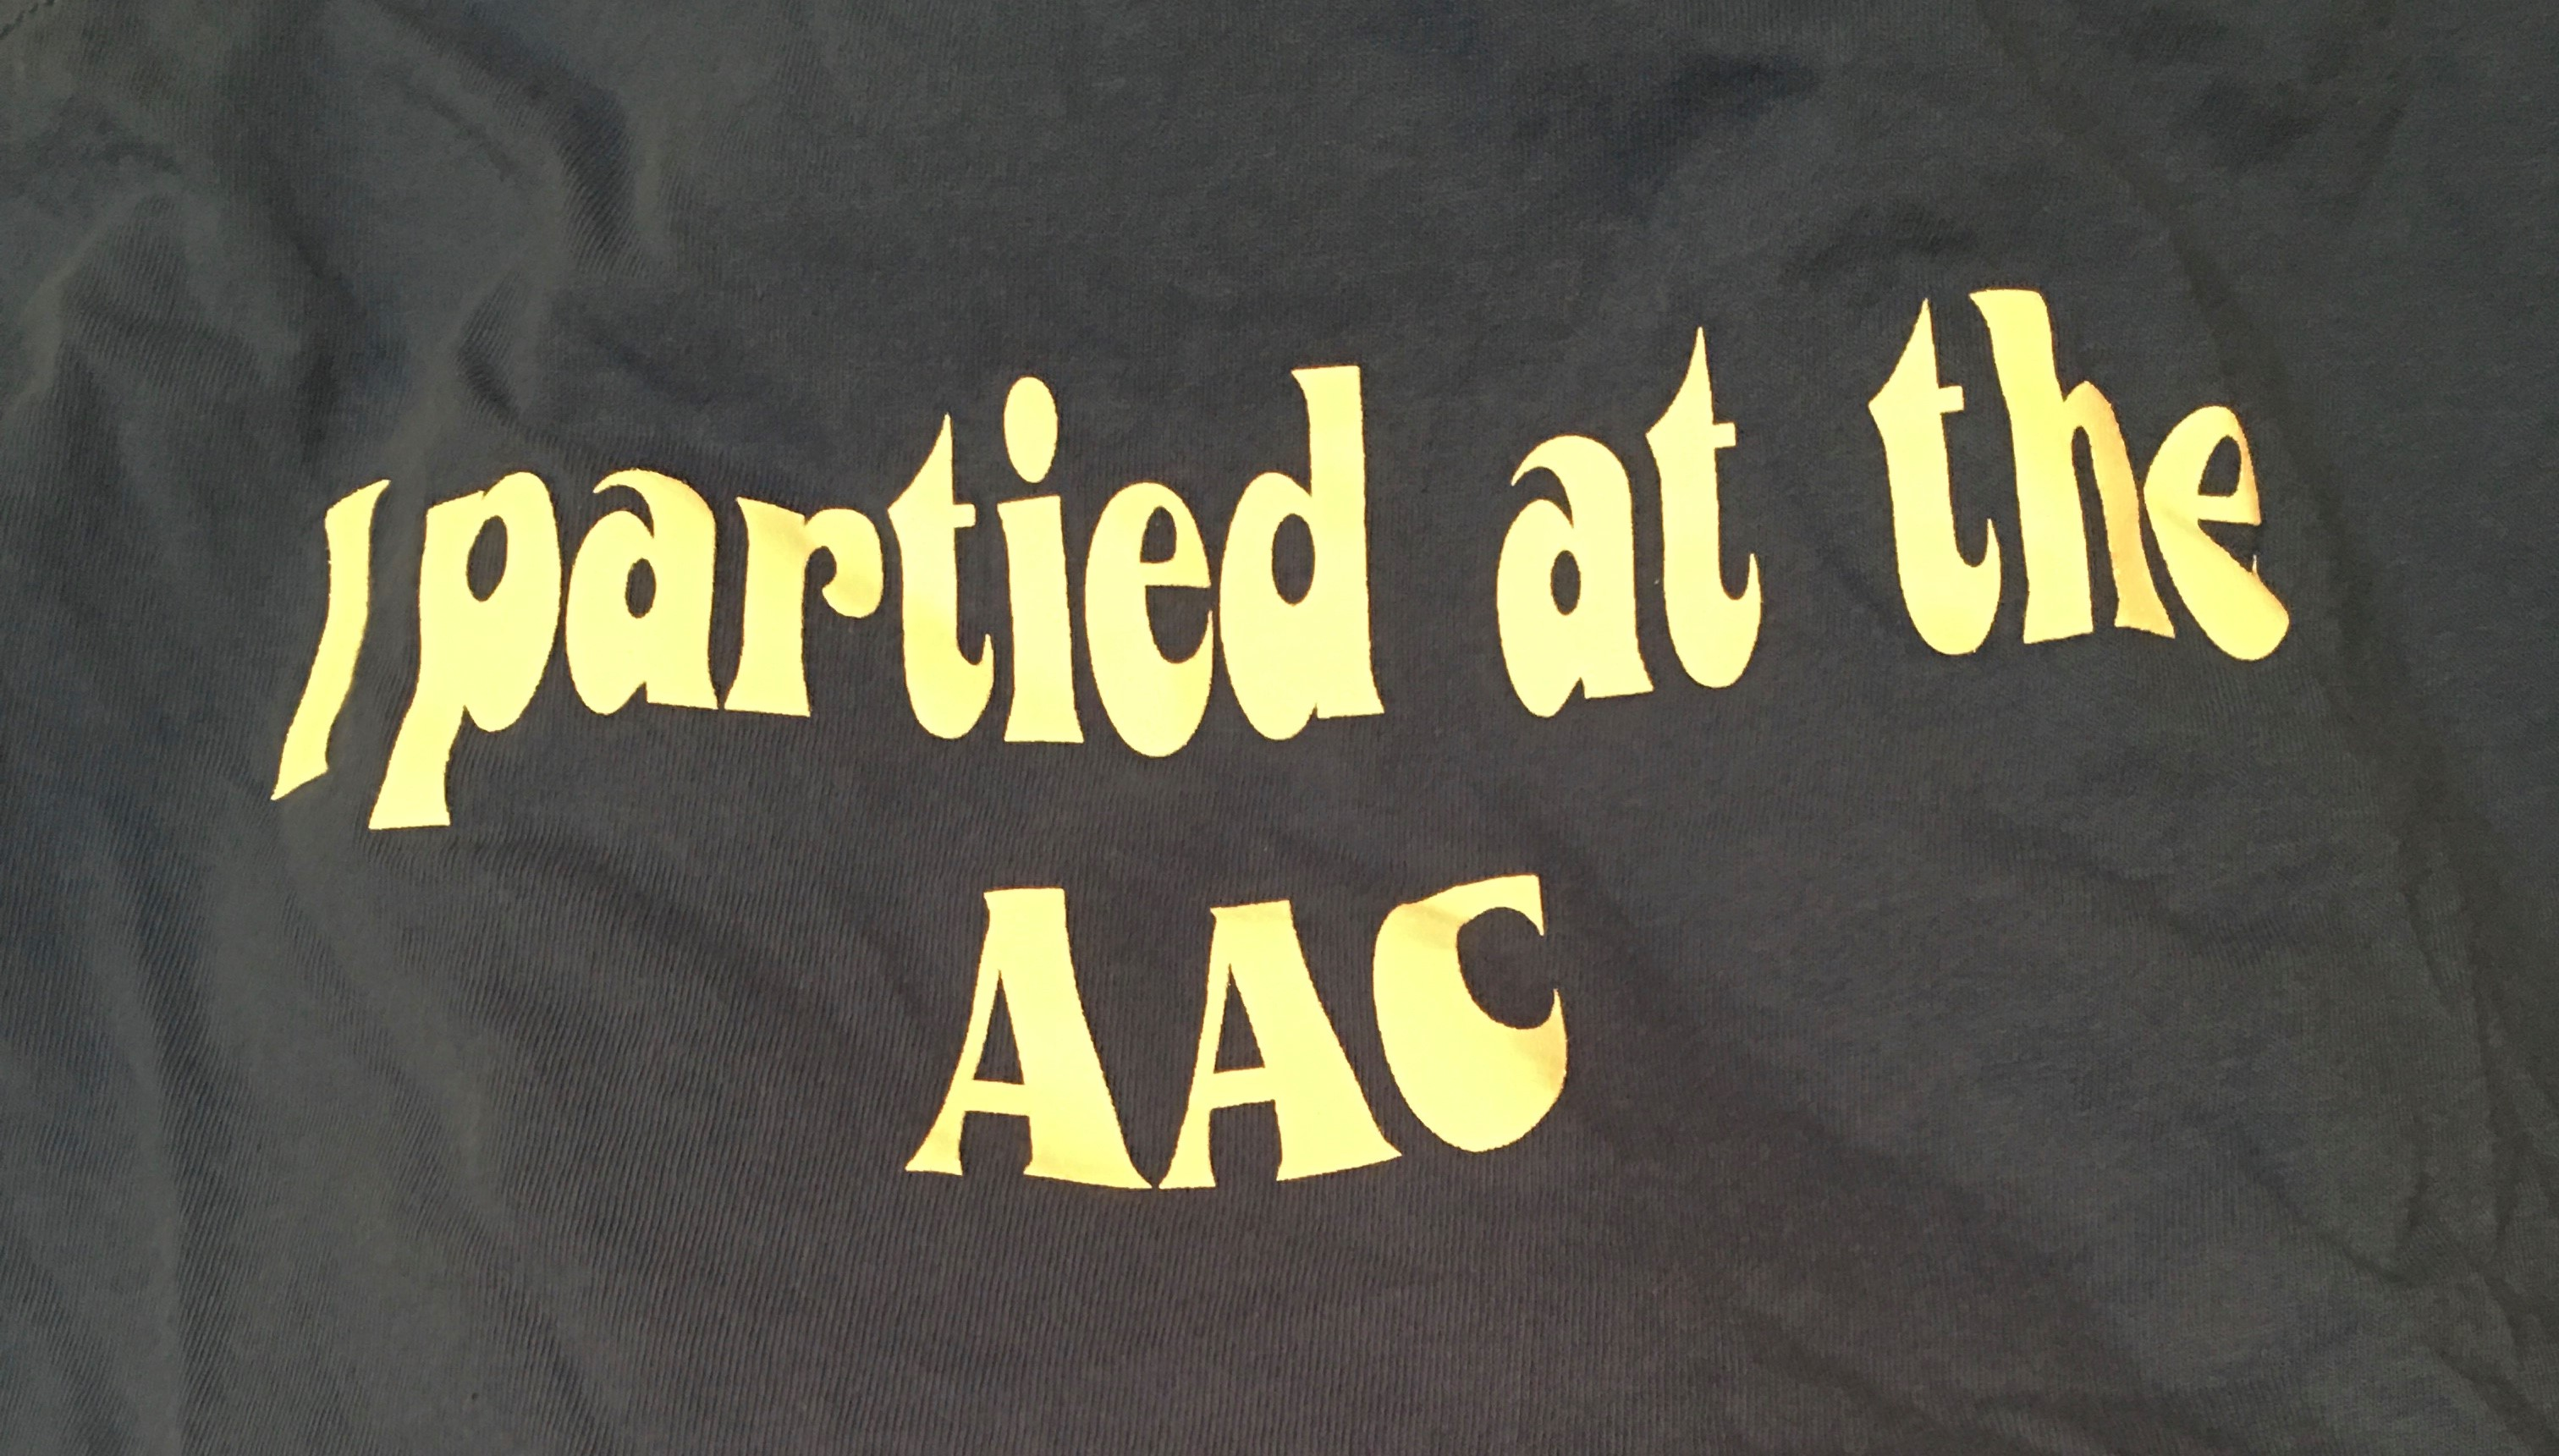 I Partied at the AAC T-shirt